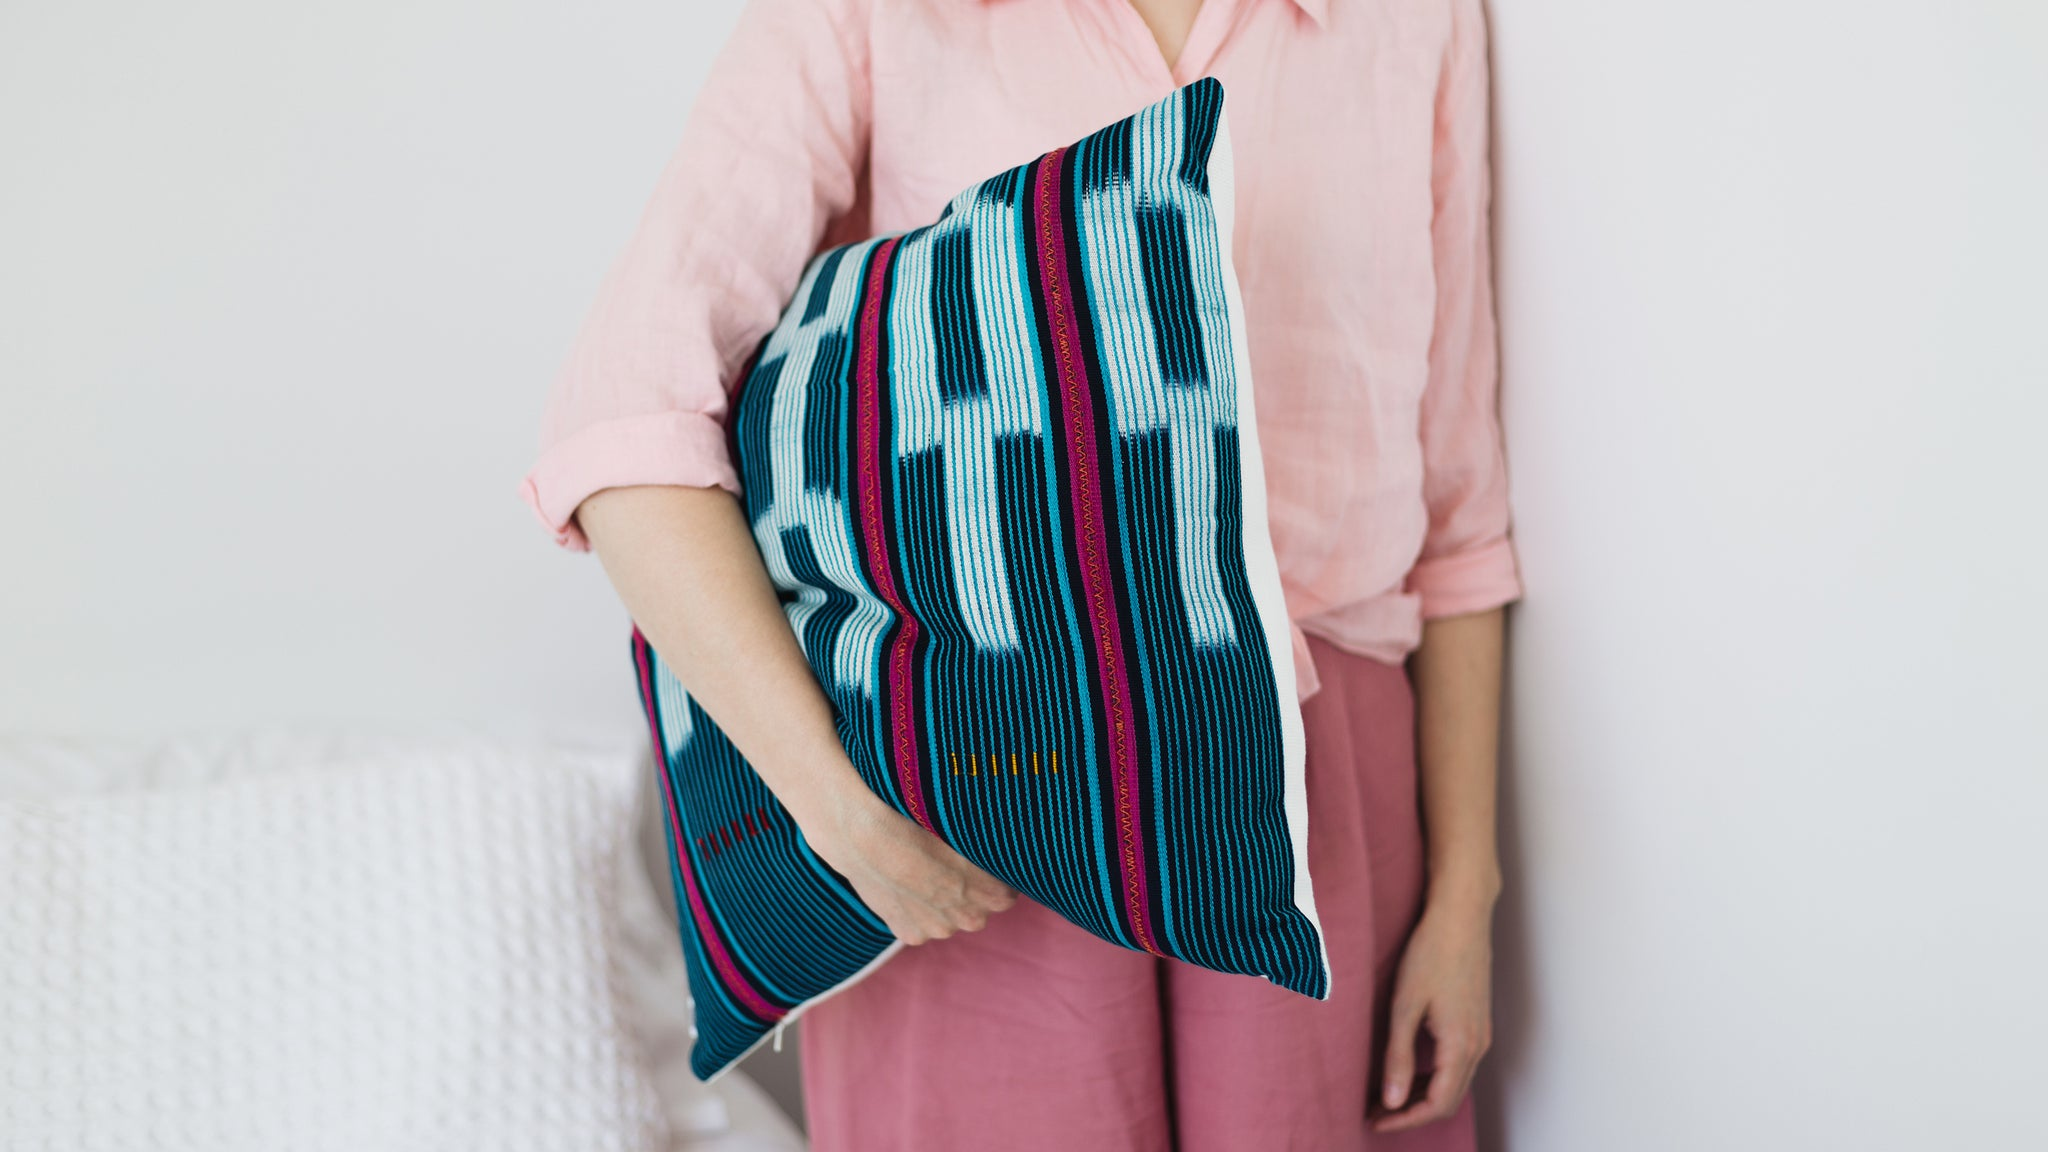 Ethical hand dyed, hand woven artisan crafted blue turquoise and pink baoule cushion made by former refugees building new lives in New Zealand